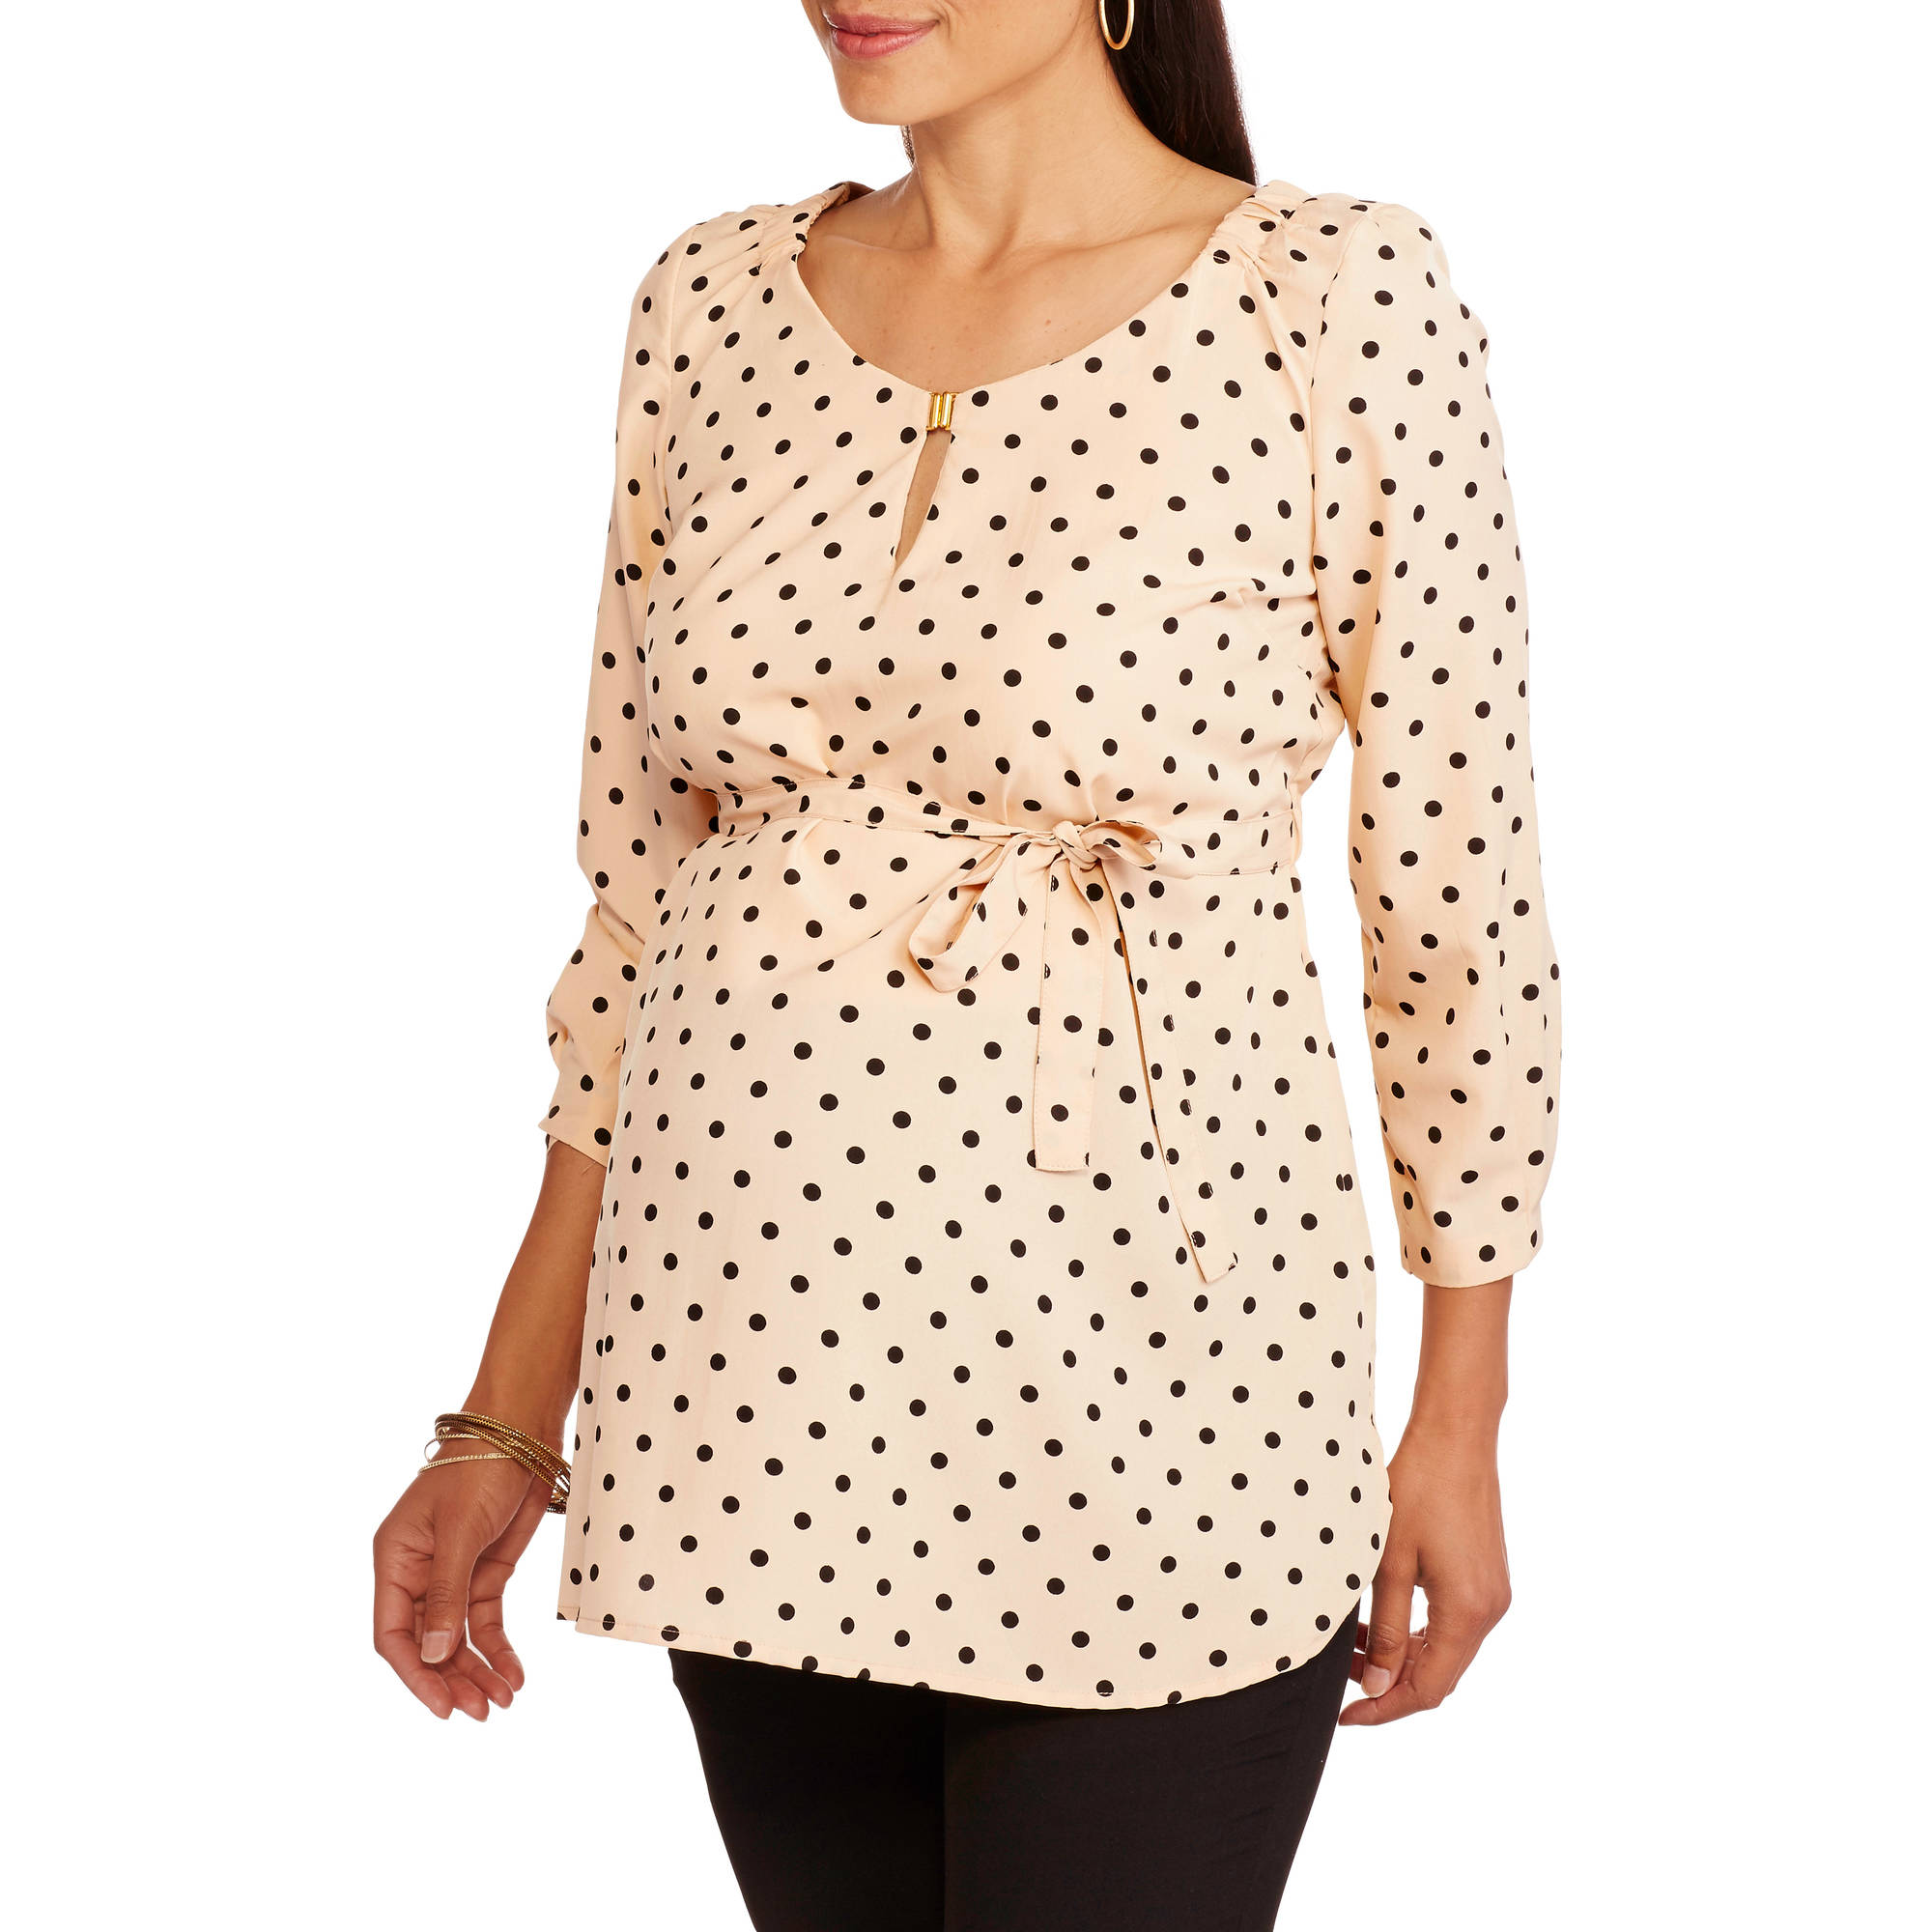 Oh! Mamma Maternity Polka Dot Top with Tie Waist